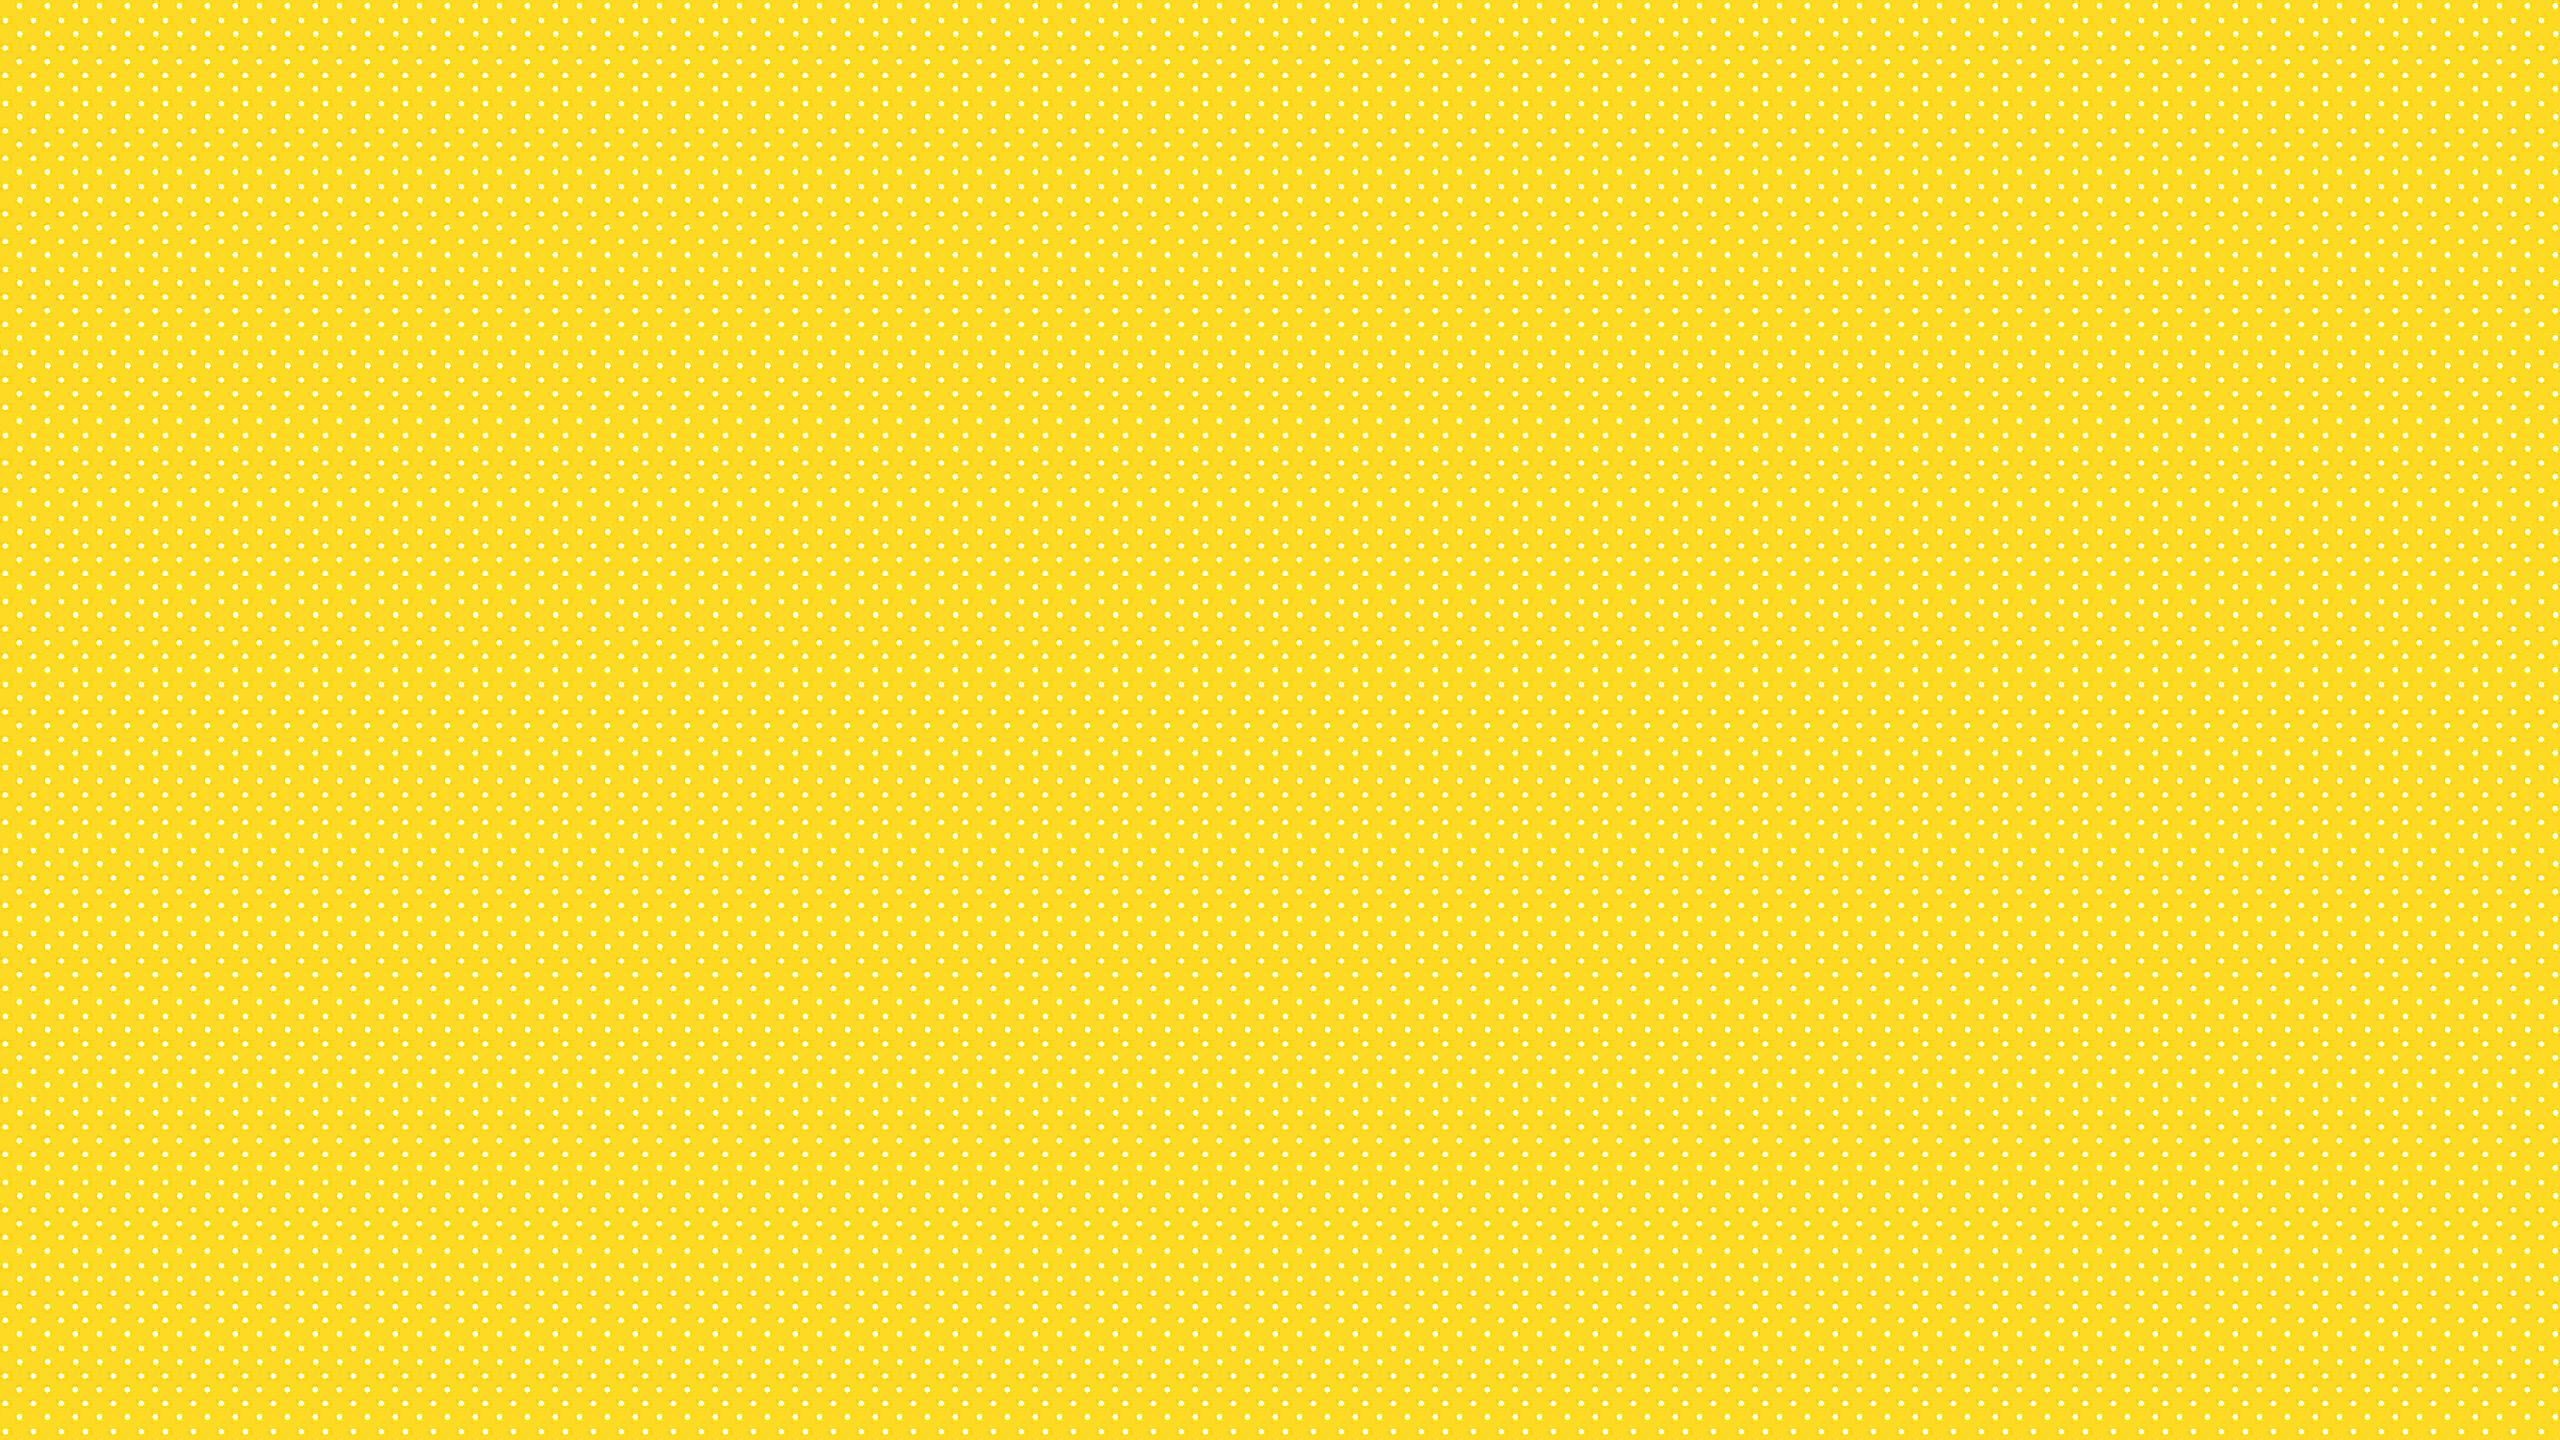 Yellow background • Wallpaper For You HD Wallpaper For ...